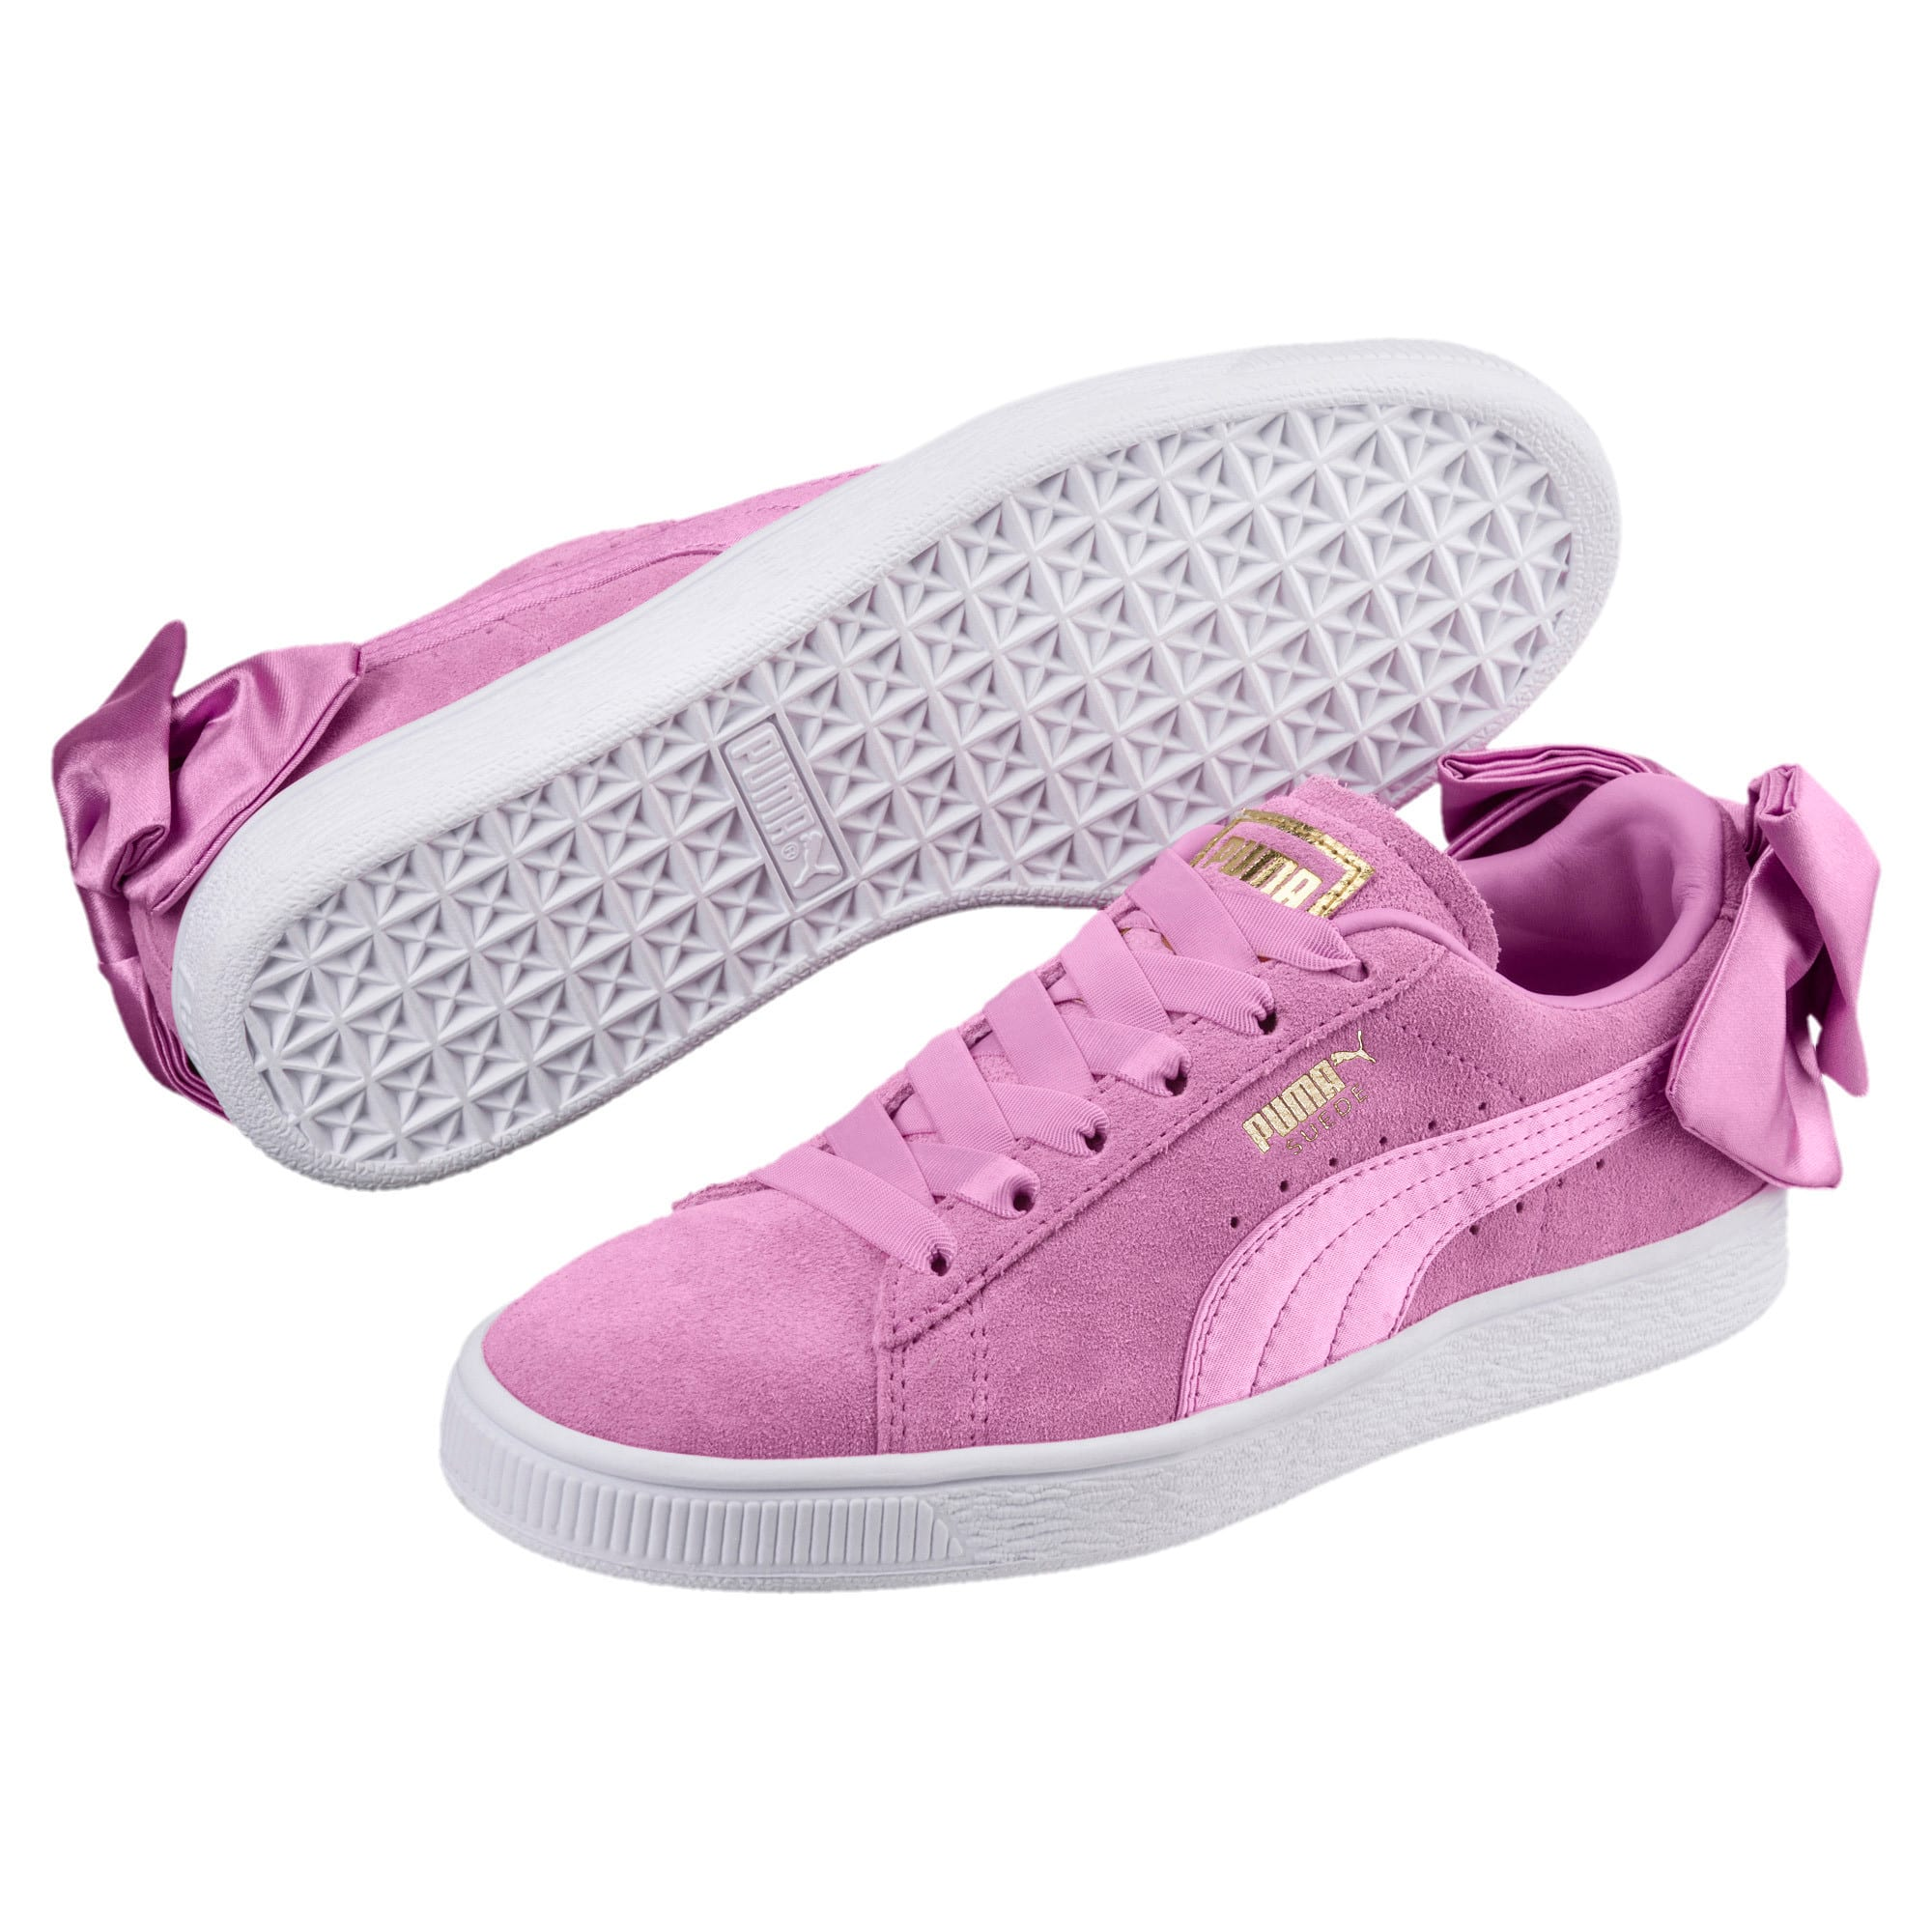 Thumbnail 2 of Suede Bow Girls' Trainers, Orchid-Orchid, medium-IND